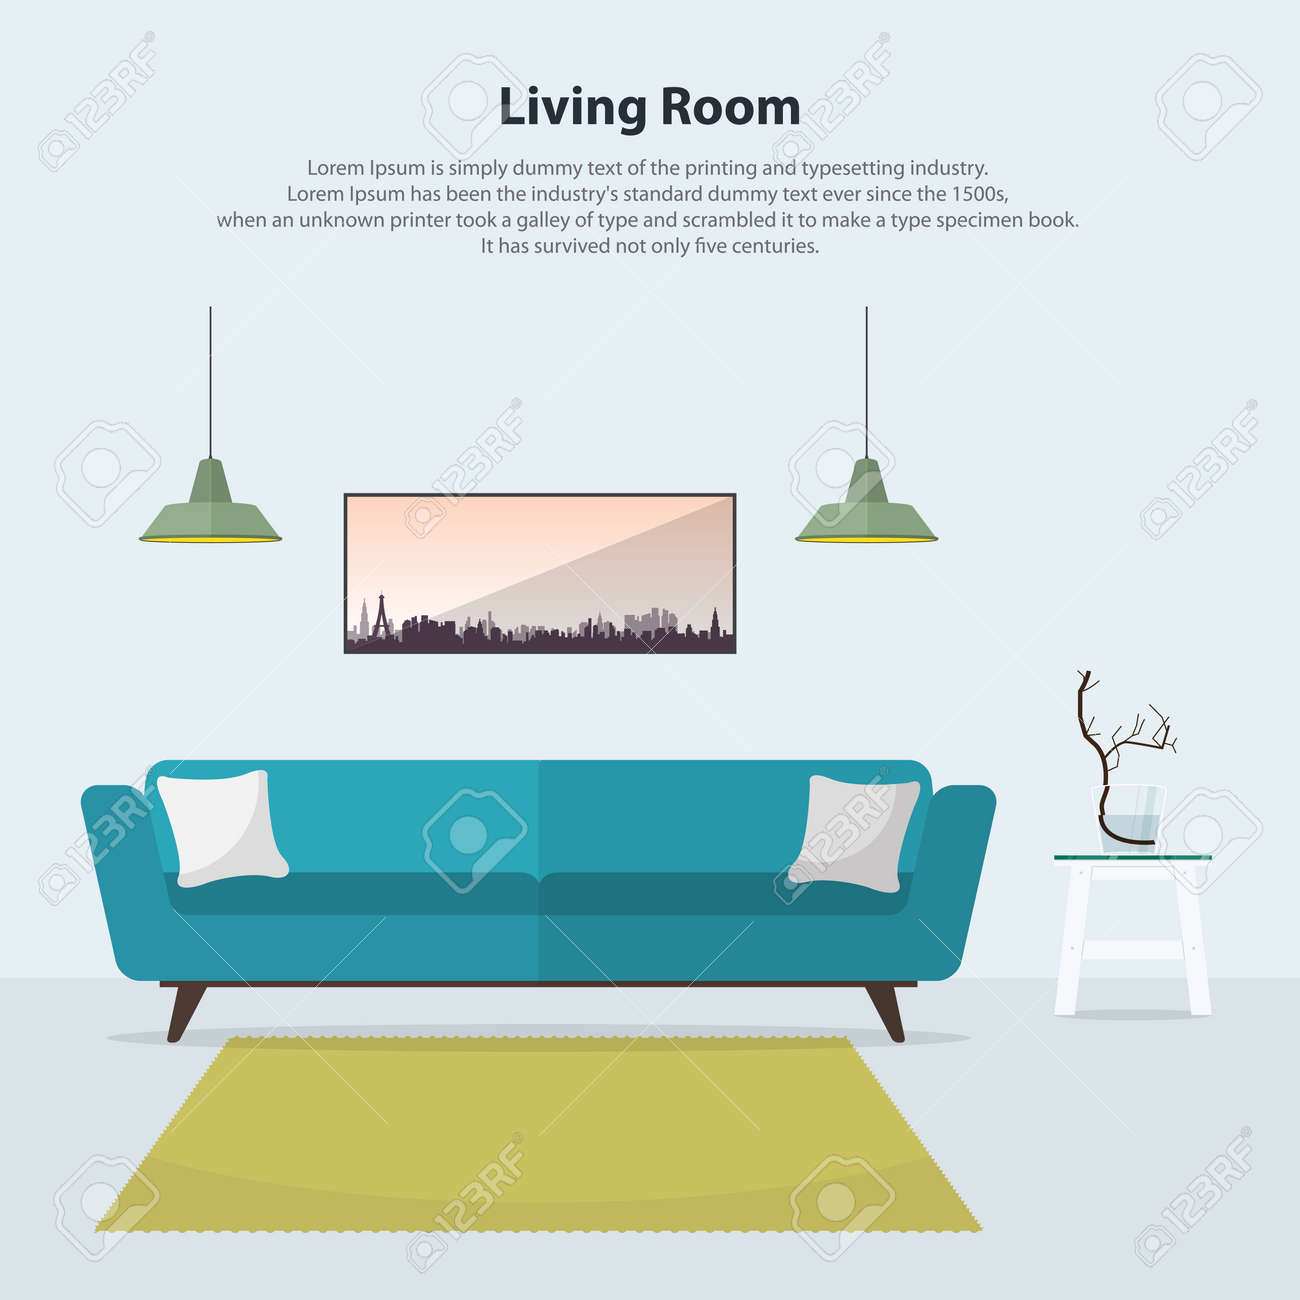 Home interior design modern living room interior with blue sofa table lamps and